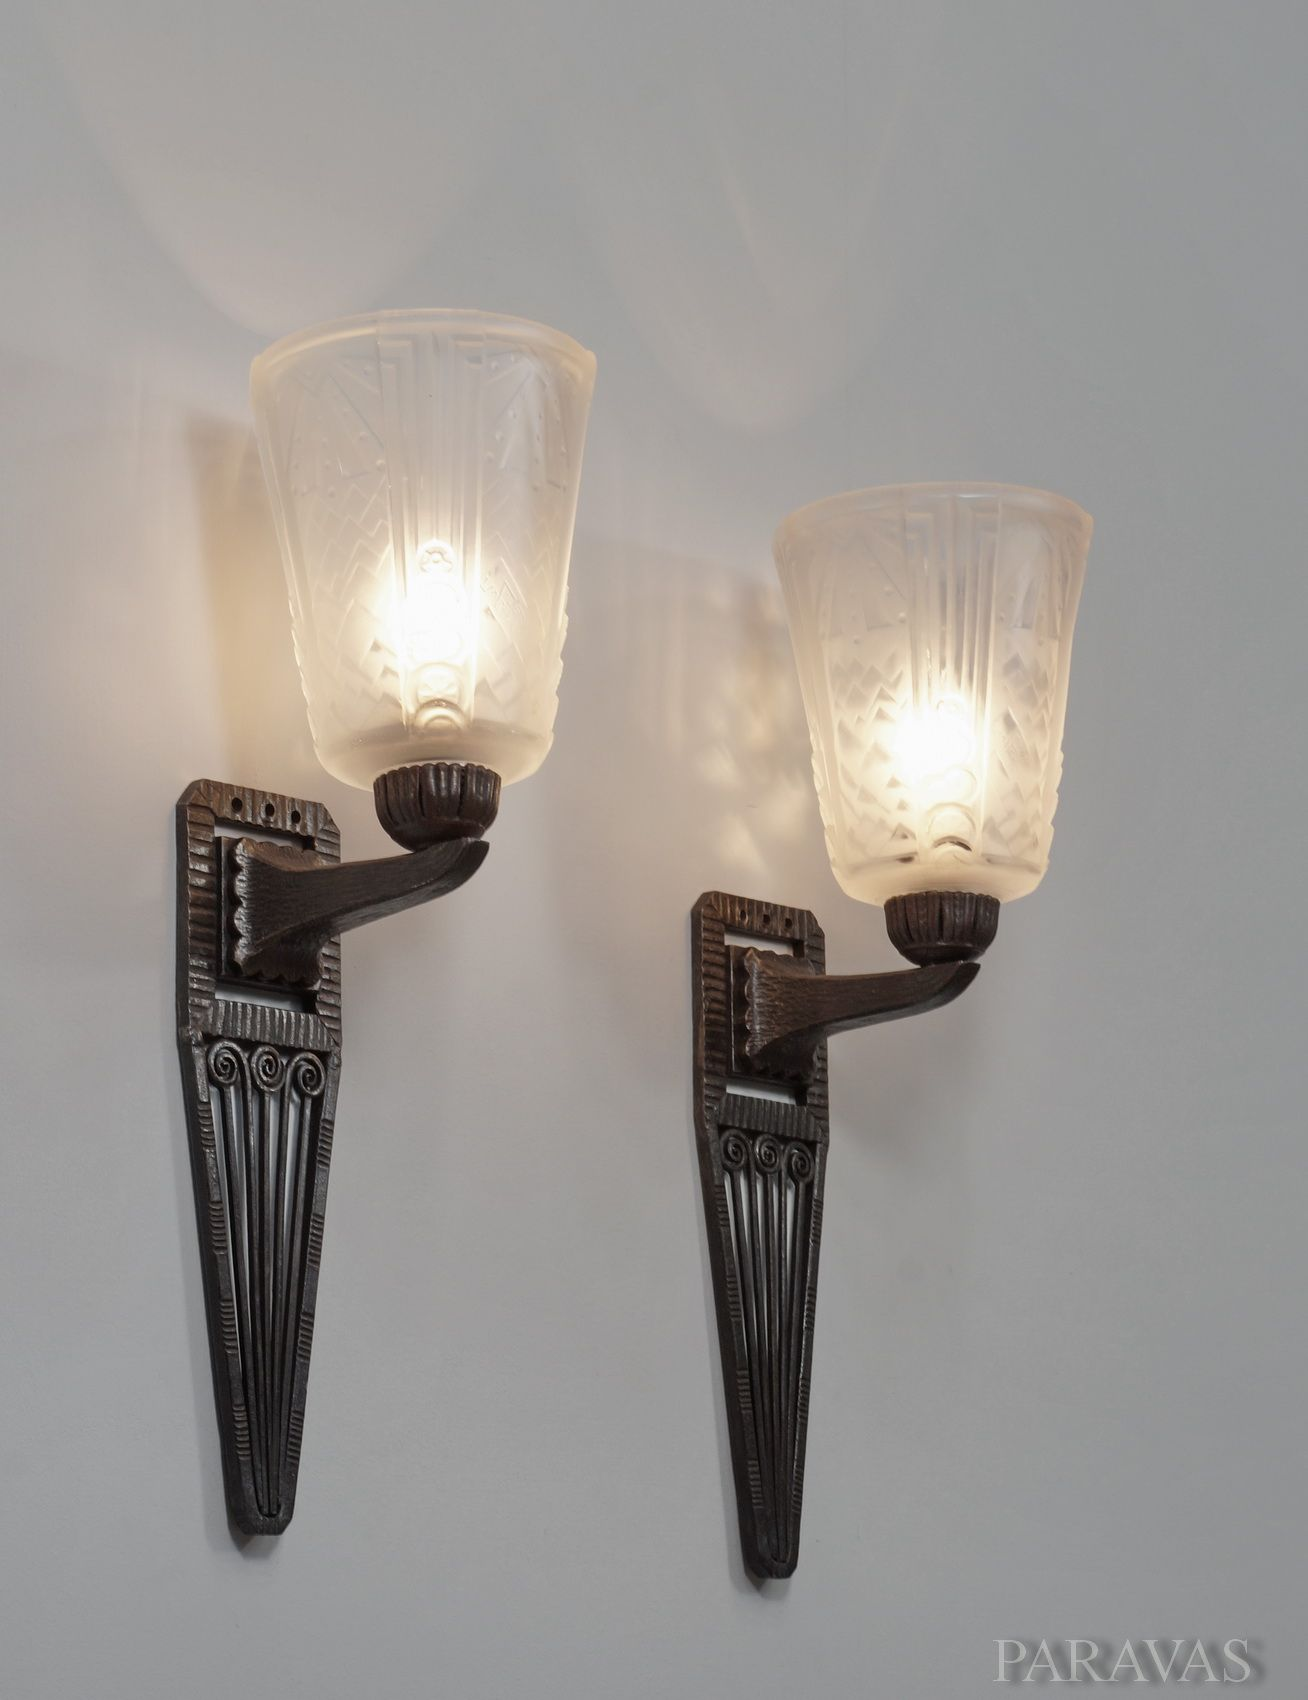 MULLER FRERES A superb pair of wrought iron French art deco wall